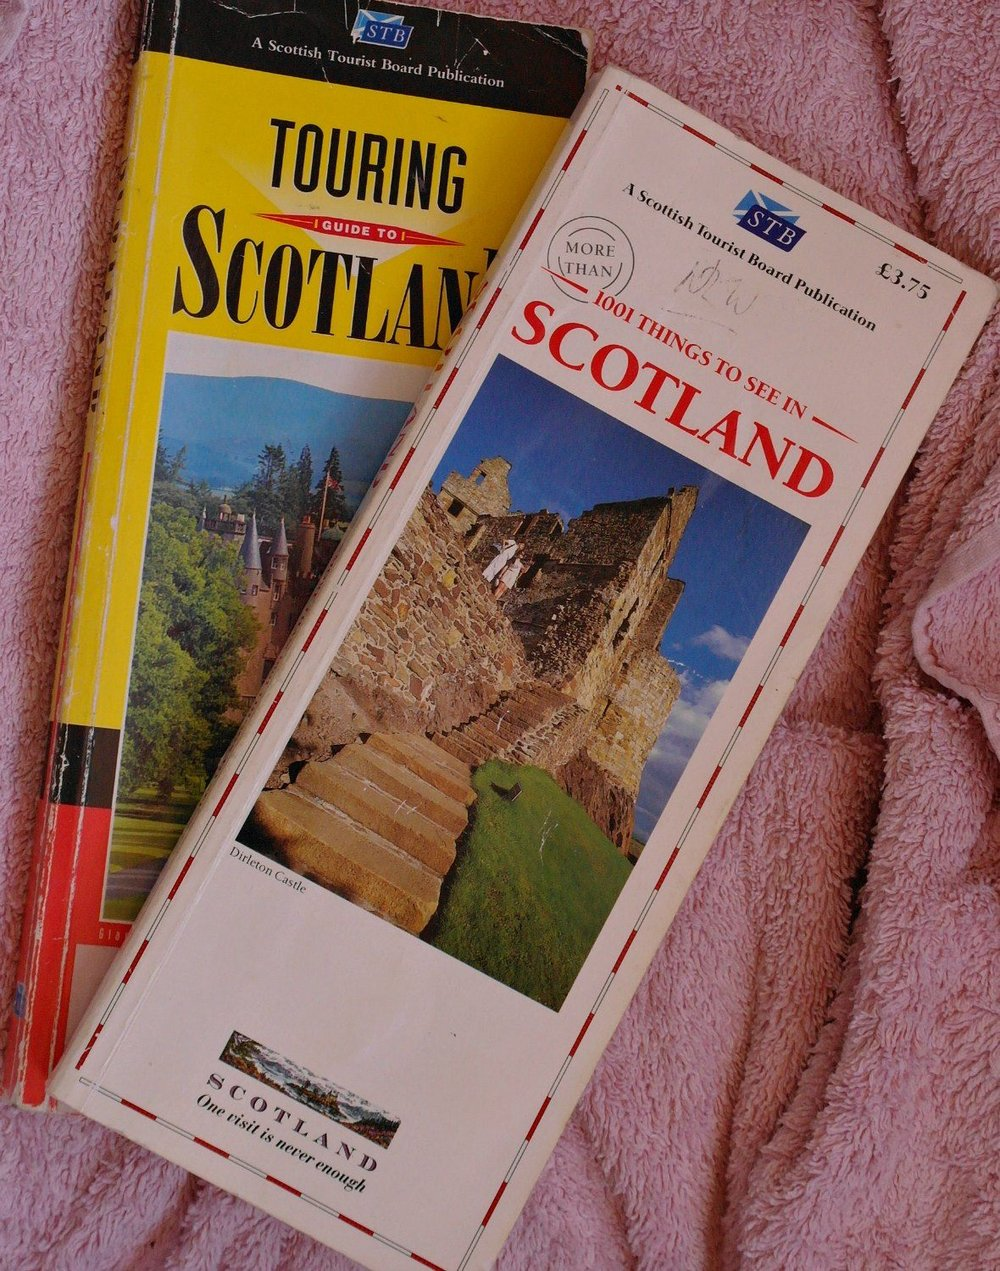 What the knowledgeable staff in the 'TICs' of old used on the odd occasion when their knowledge failed them. They looked up a publication invariably known as '1001' and it really did have more than a thousand places in Scotland to visit. The top copy dates from 1990, a comparative youngster. NB I never wrote this one. Oddly enough, Johanna edited it one year though.